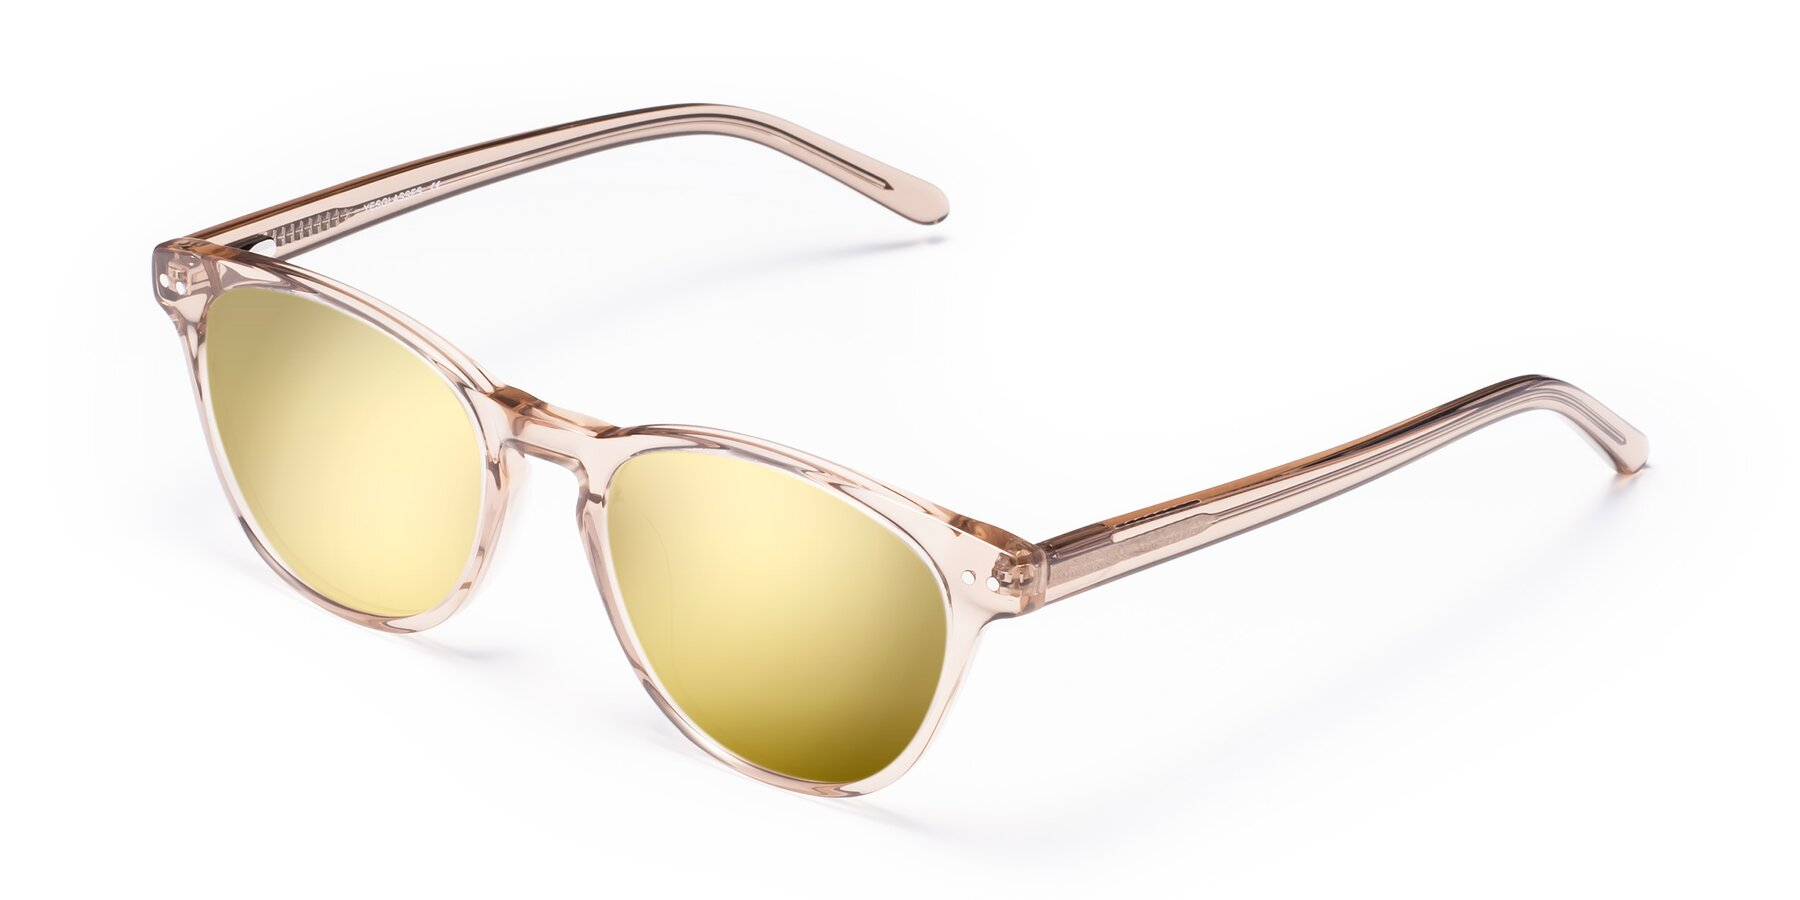 Angle of Blaze in light Brown with Gold Mirrored Lenses